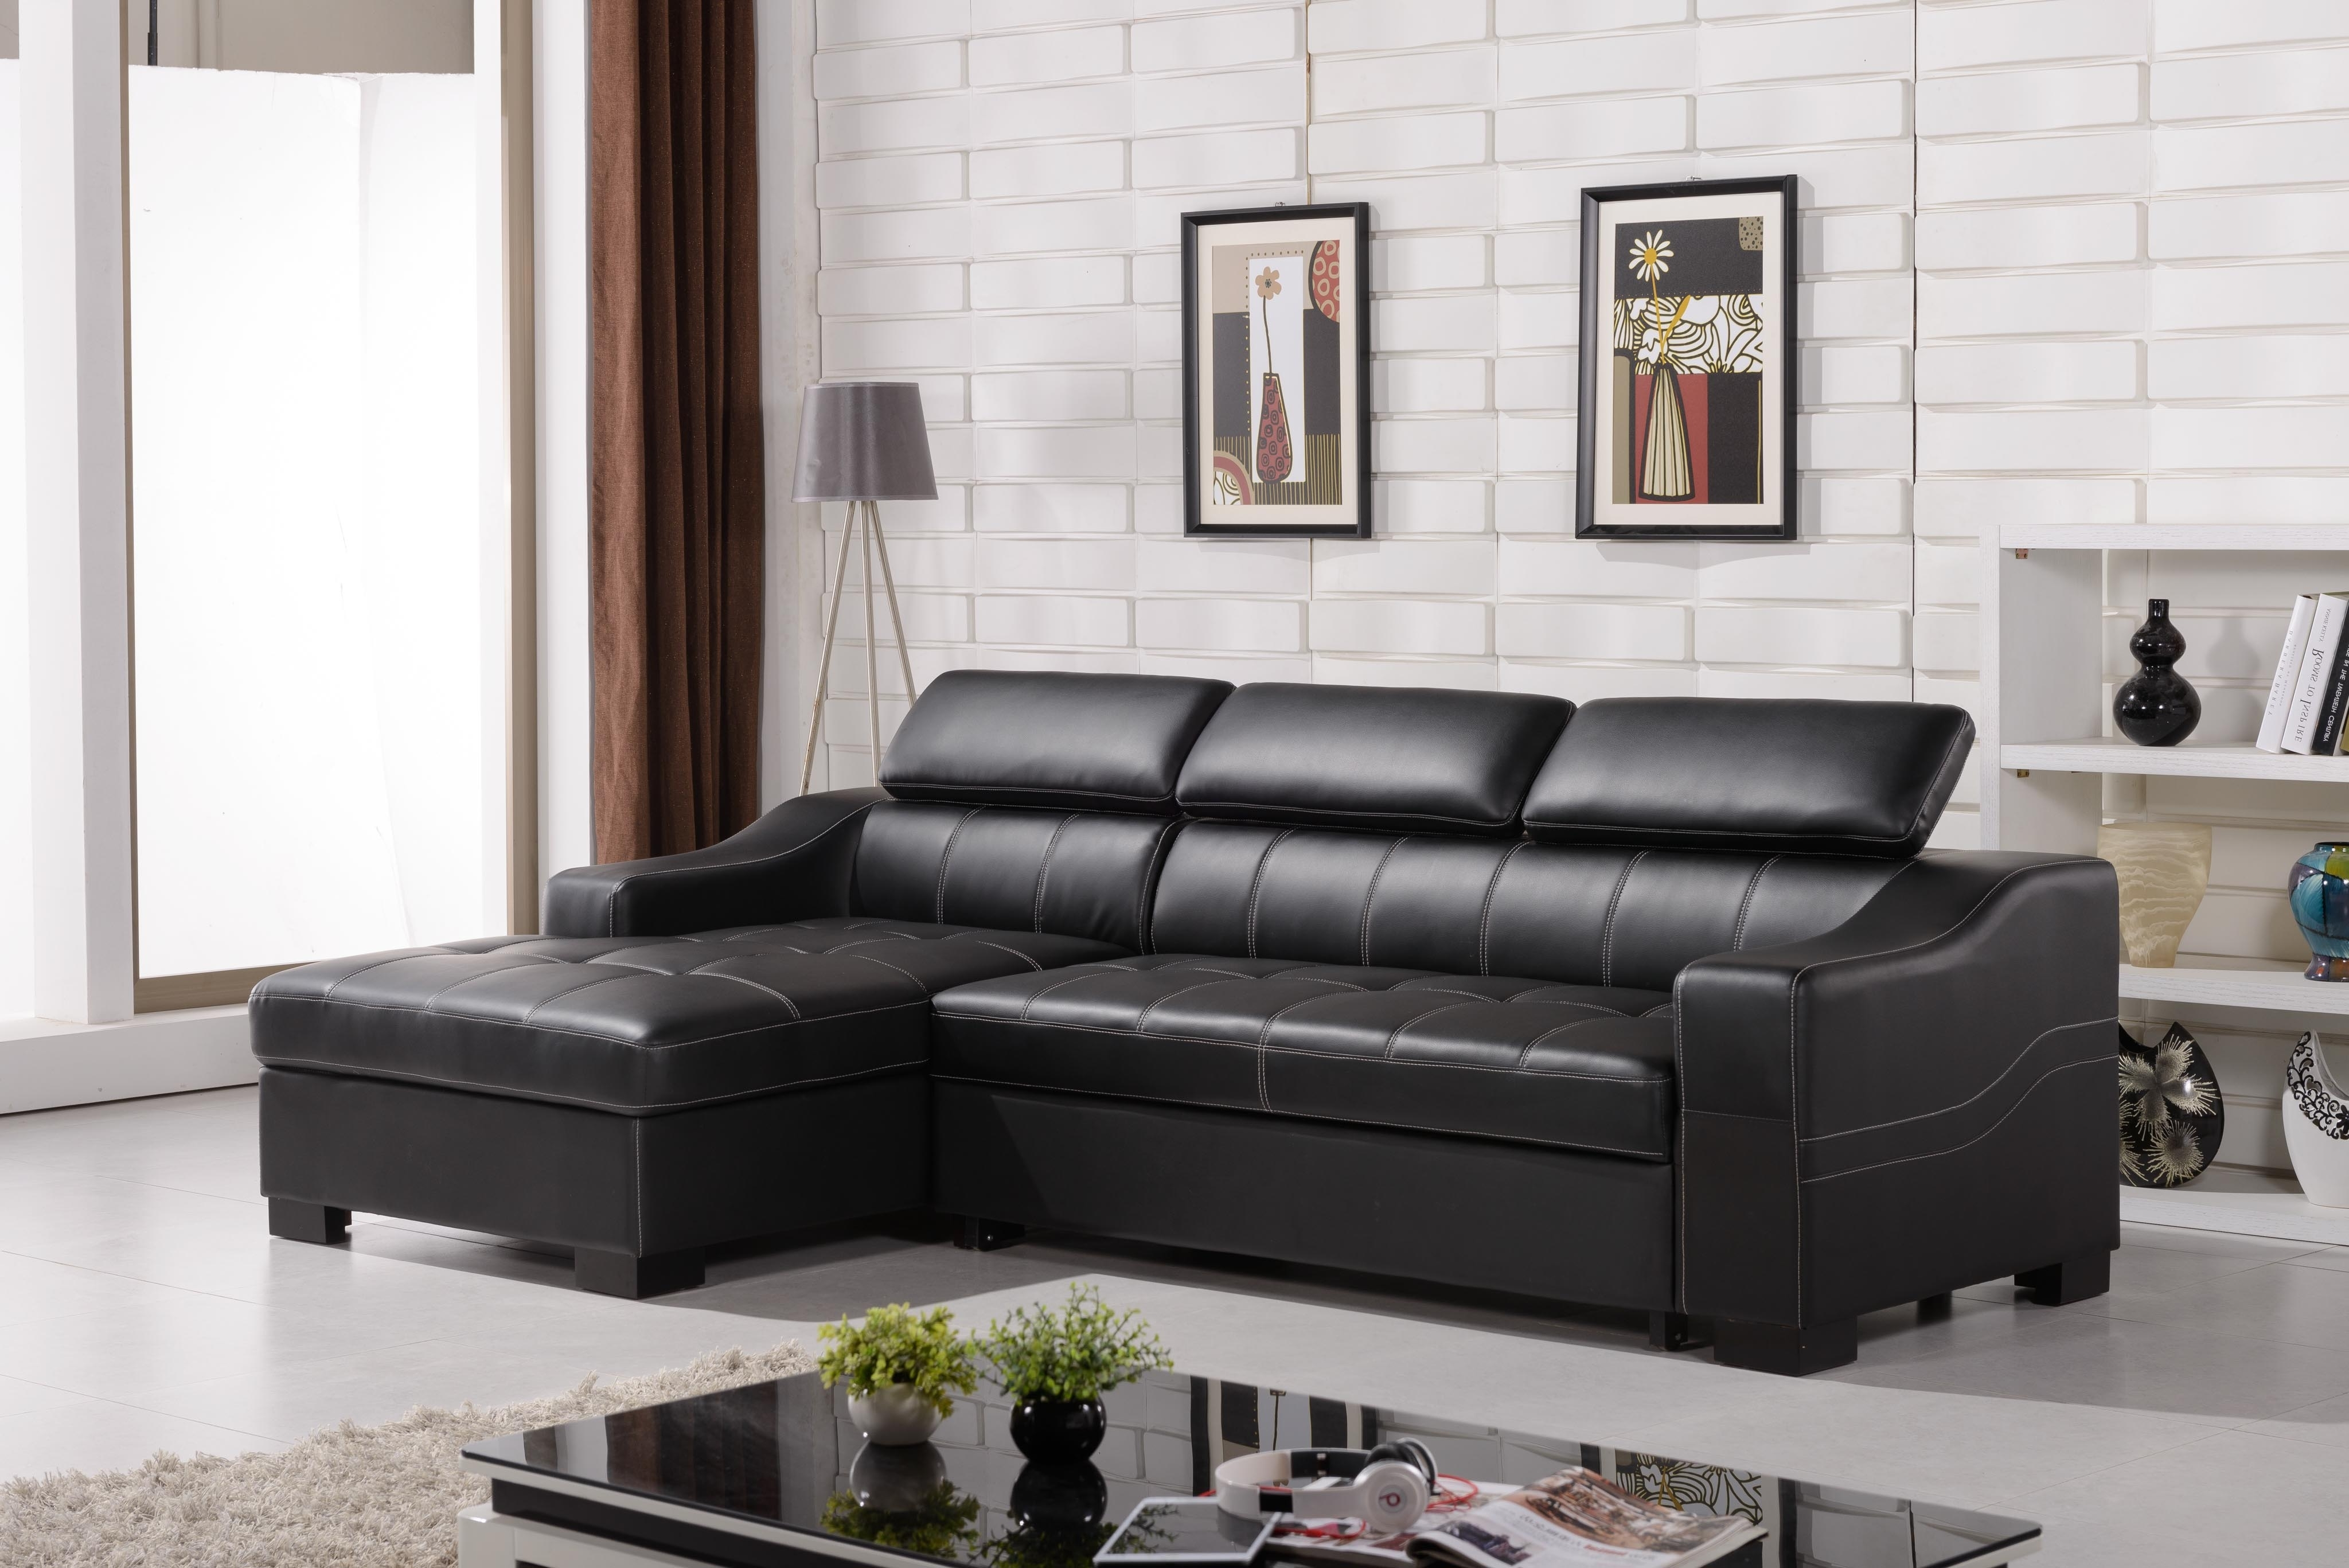 Homesfeed Within Sectional Sofas That Turn Into Beds (View 16 of 20)